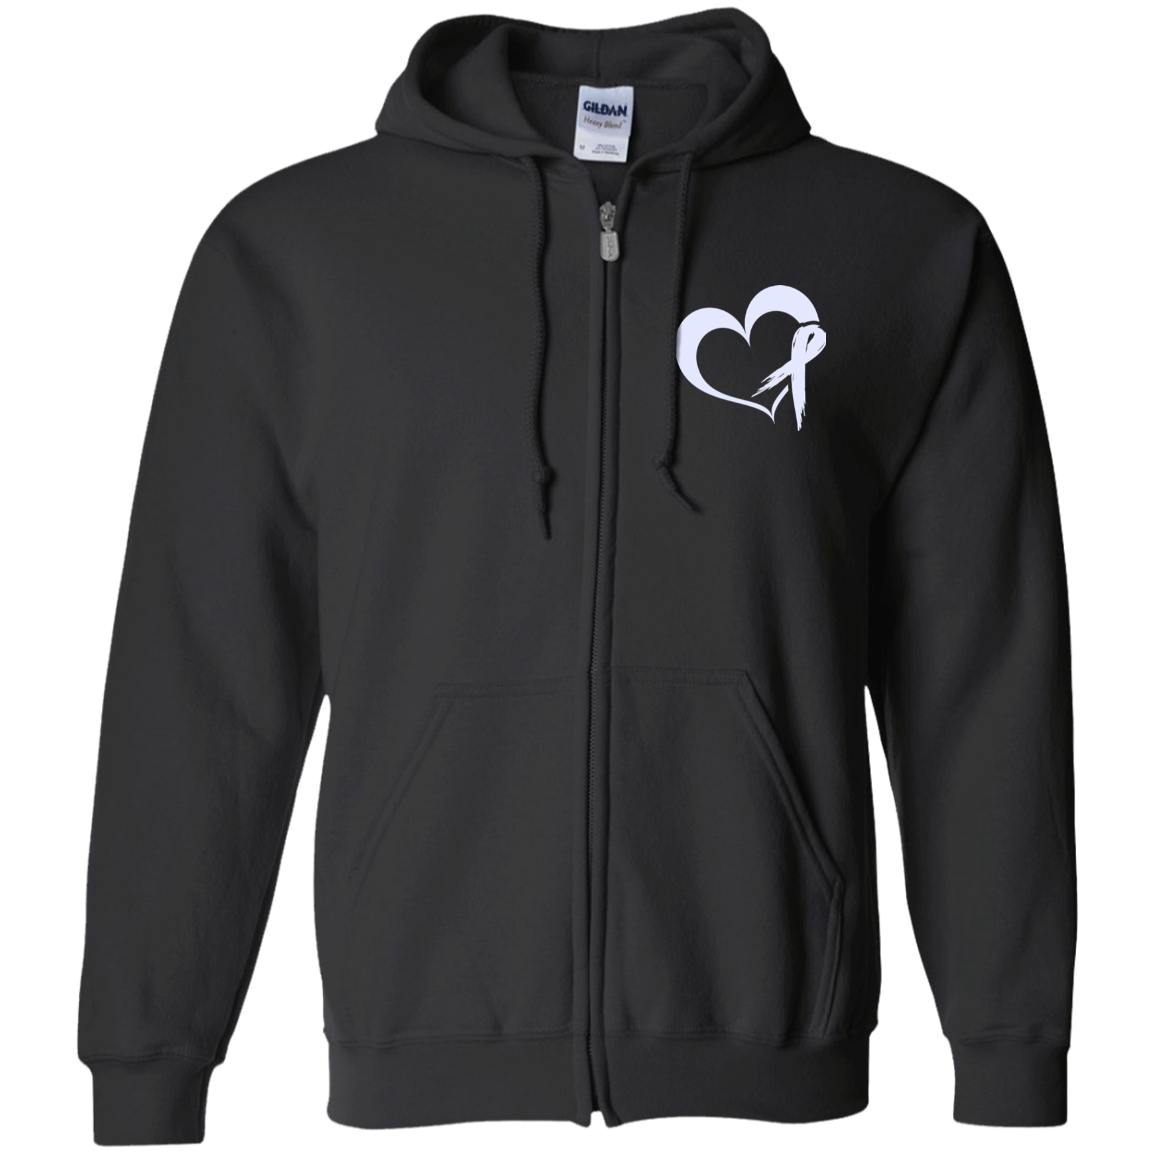 Heart Ribbon Zip Up Hooded Sweatshirt - The Unchargeables